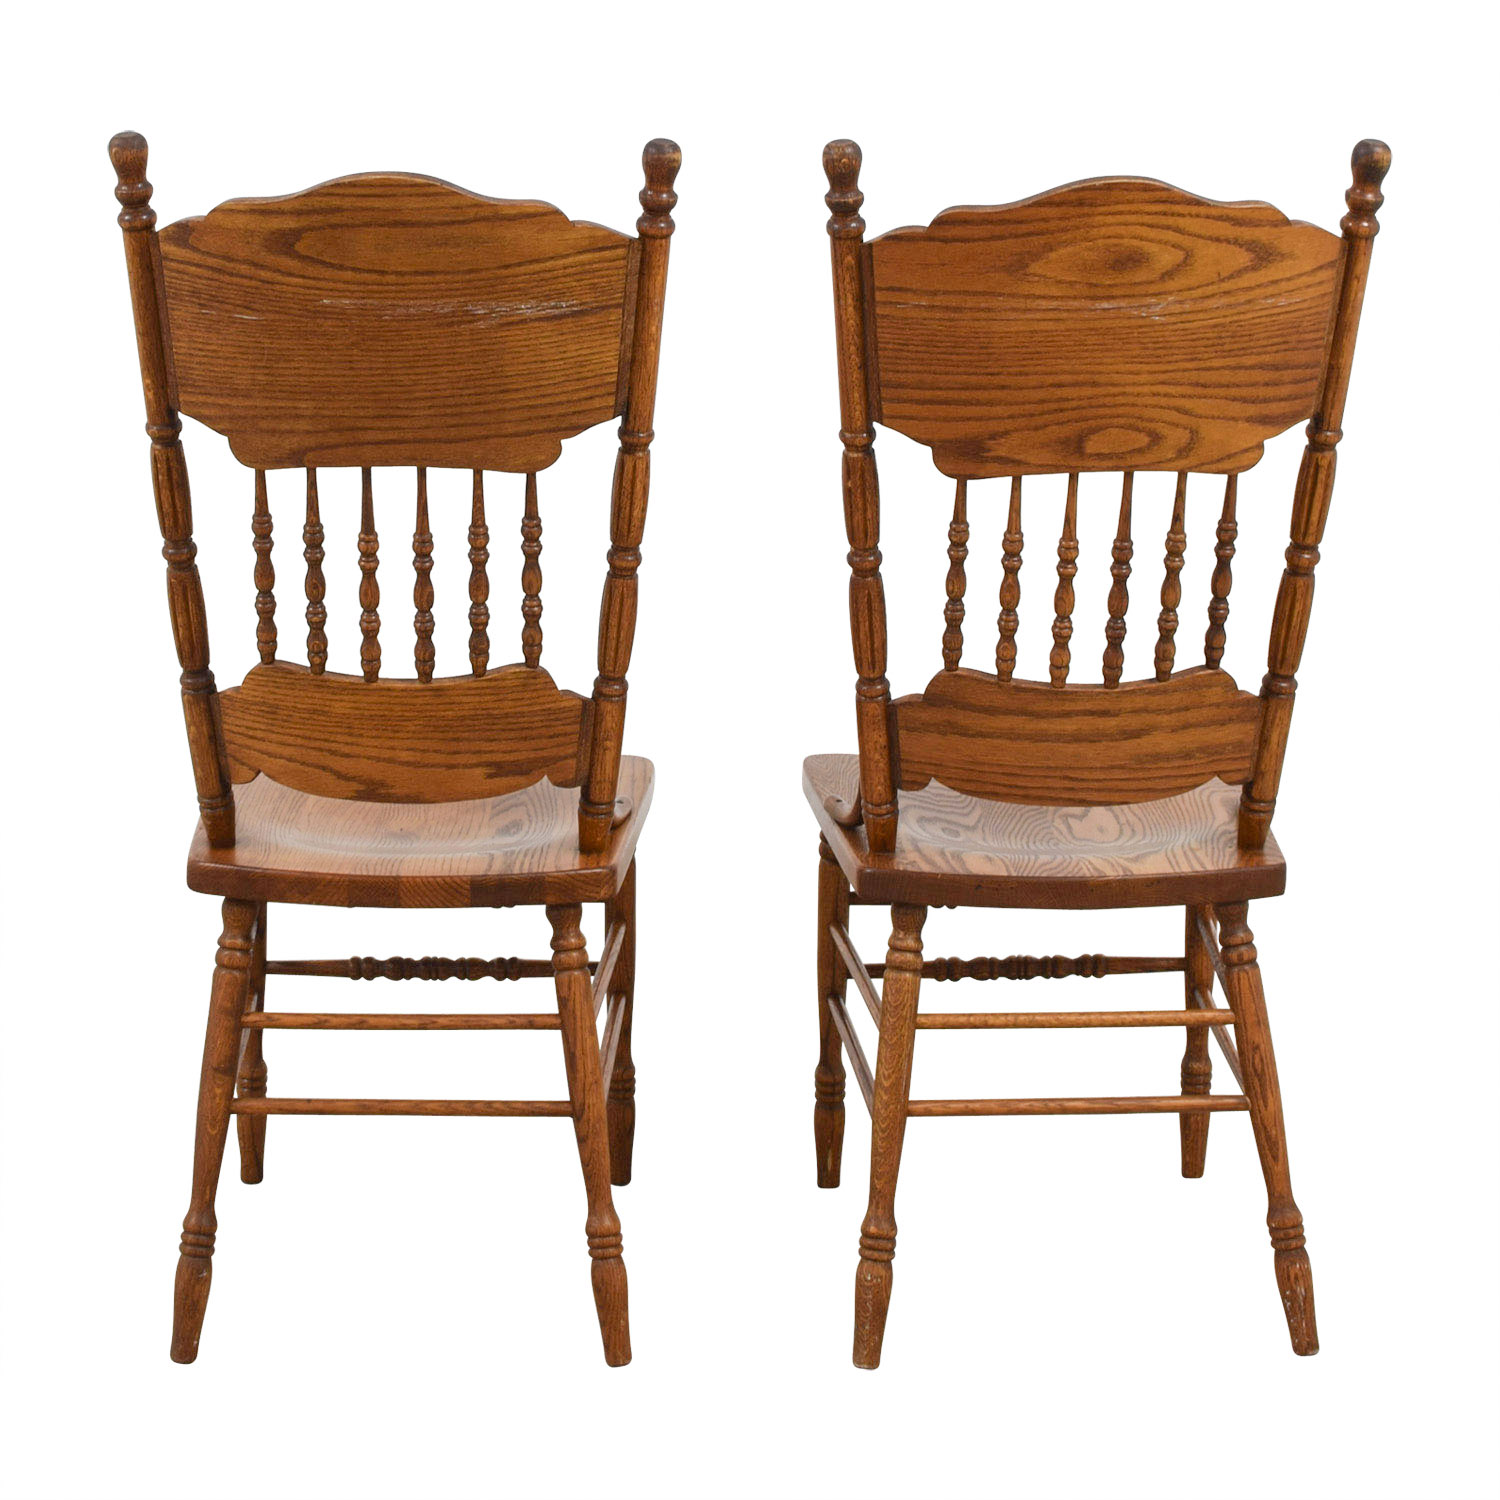 shop Antique Floral Carved Wood Chairs  Chairs